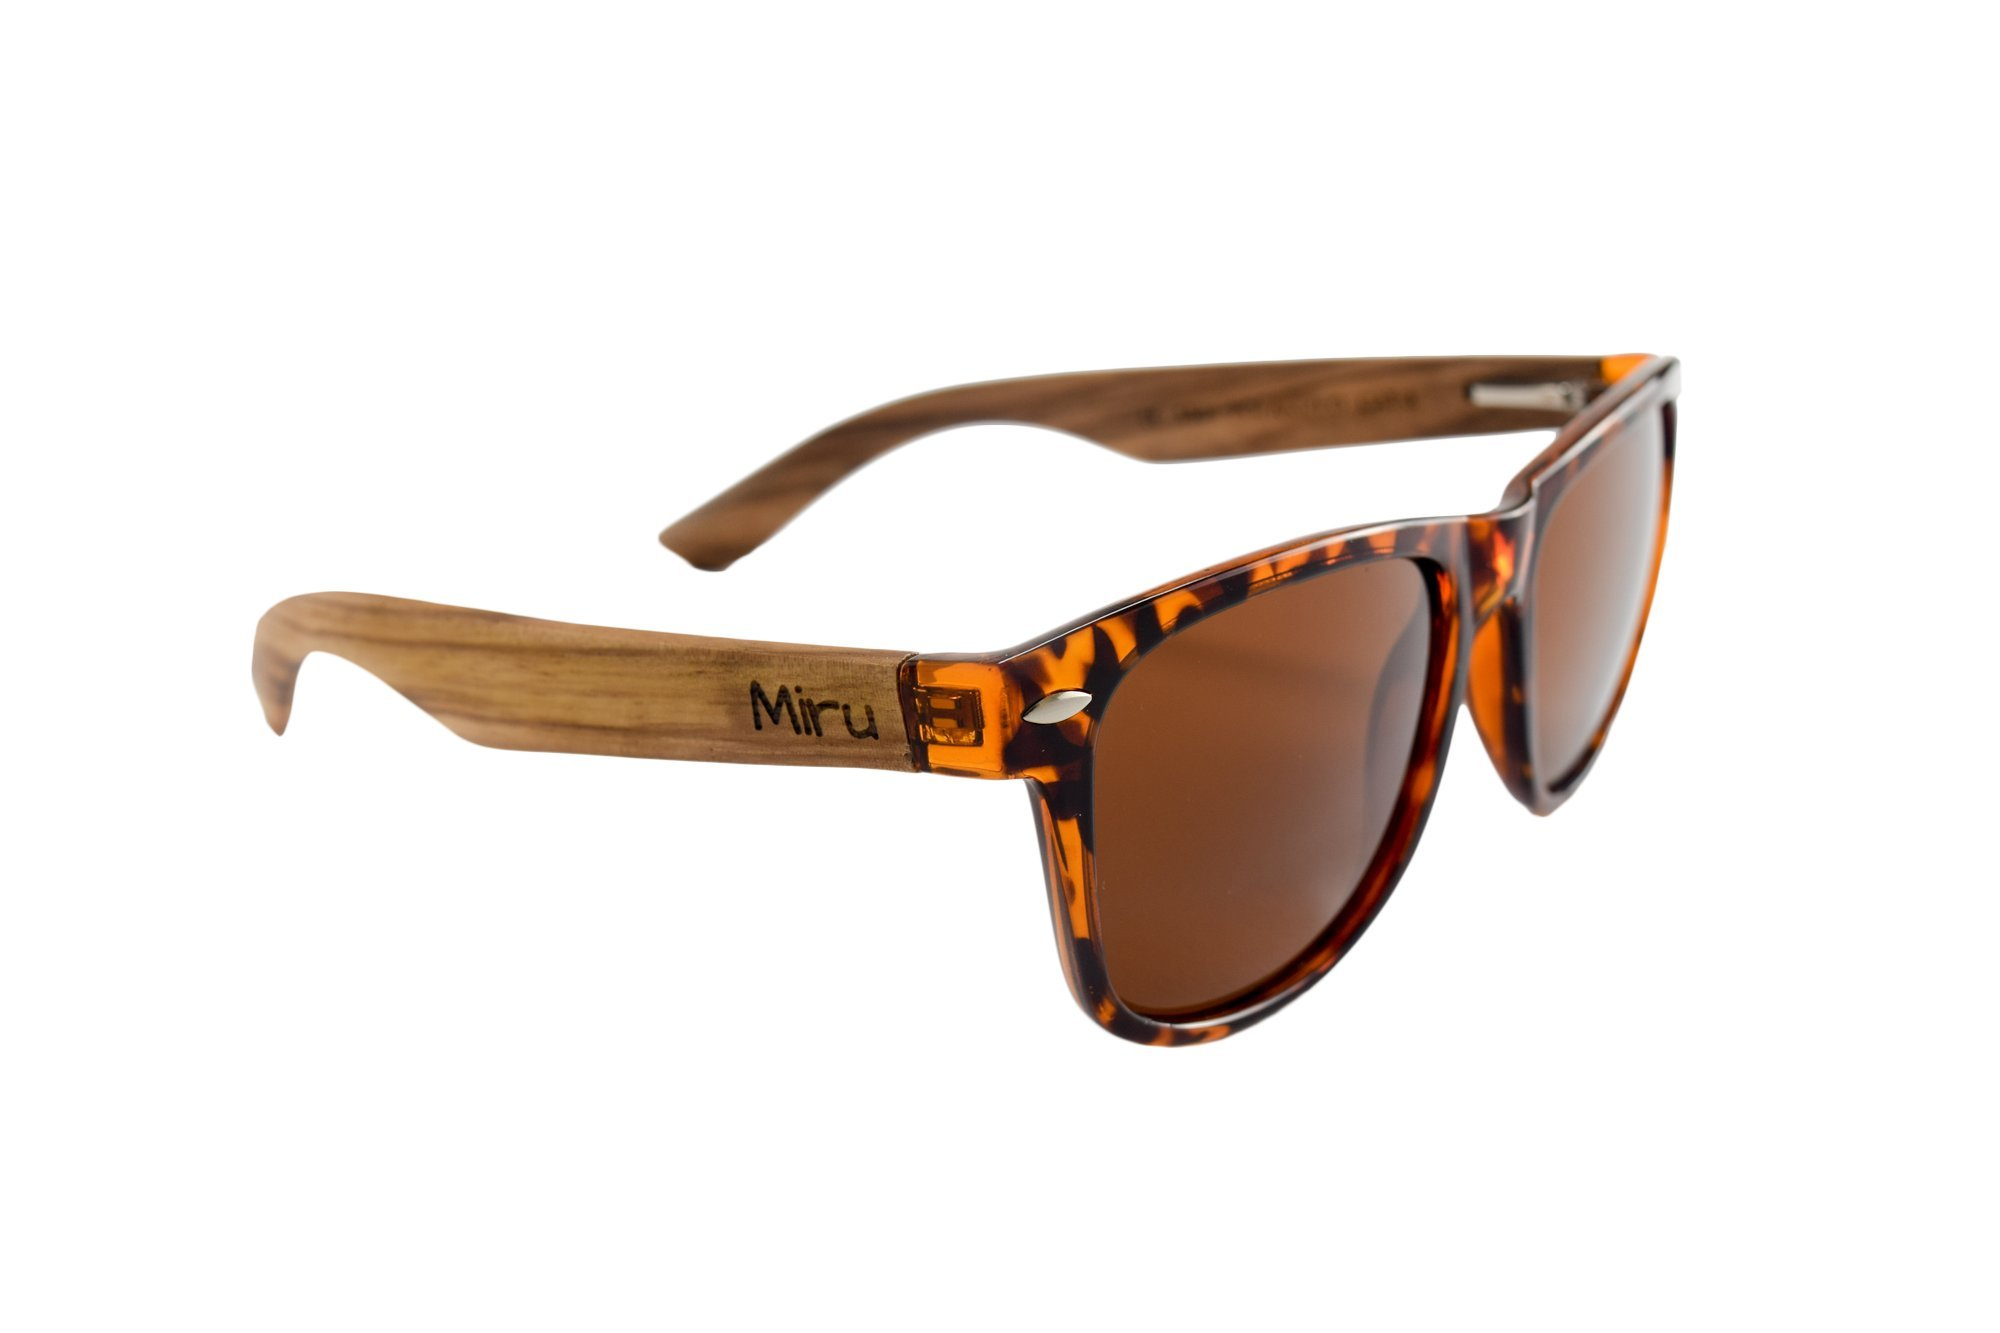 Zebra Wood Sunglasses with Tortoise Shell Frames